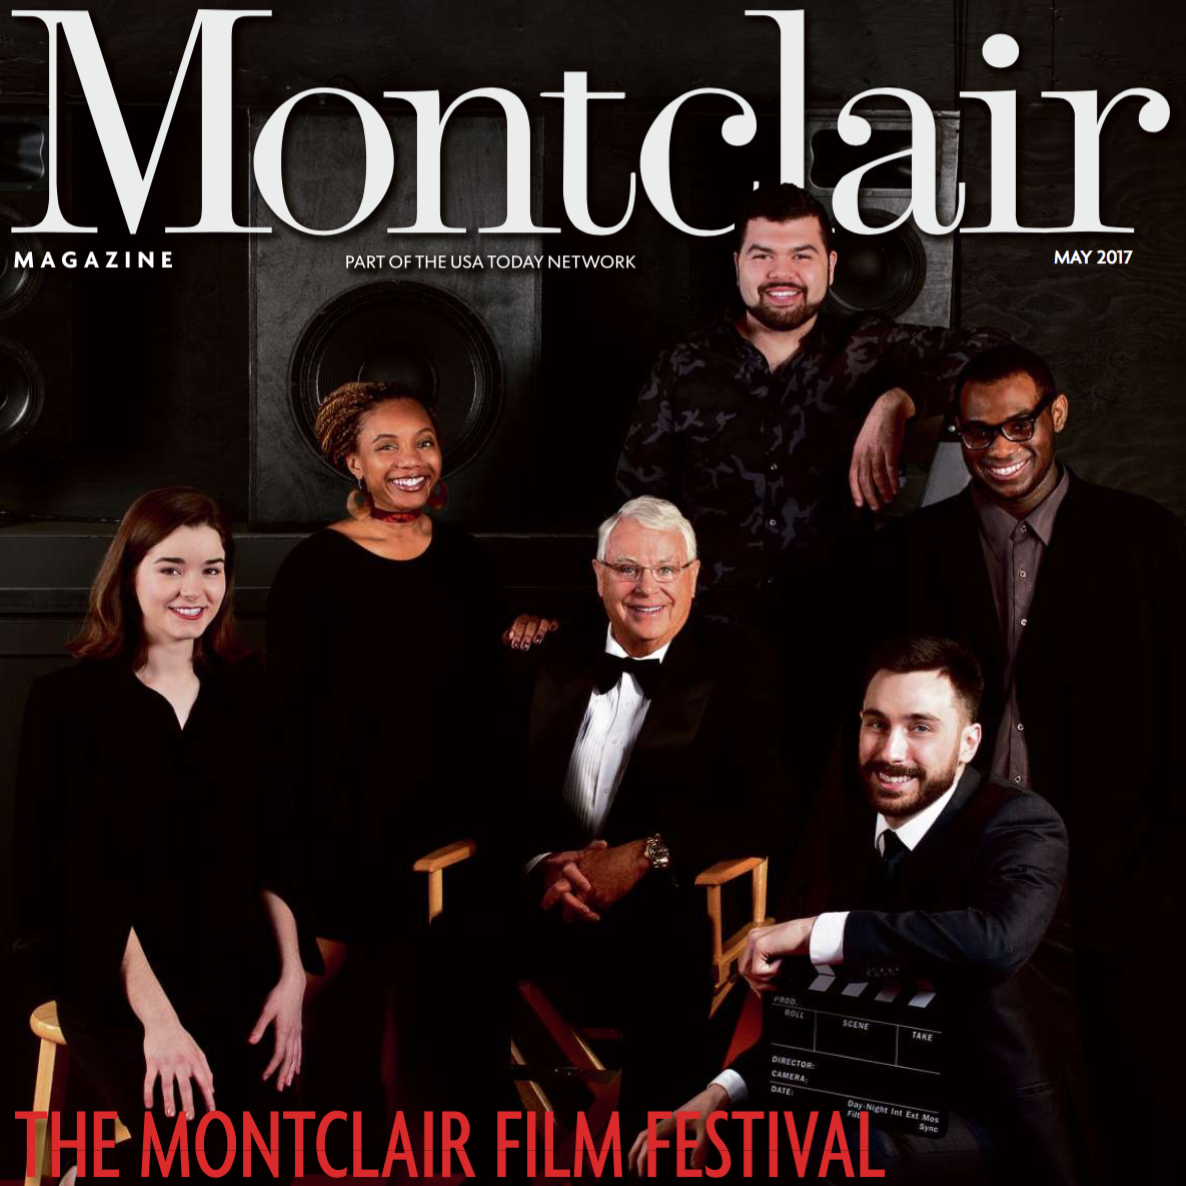 Montclair Magazine: On the Cover